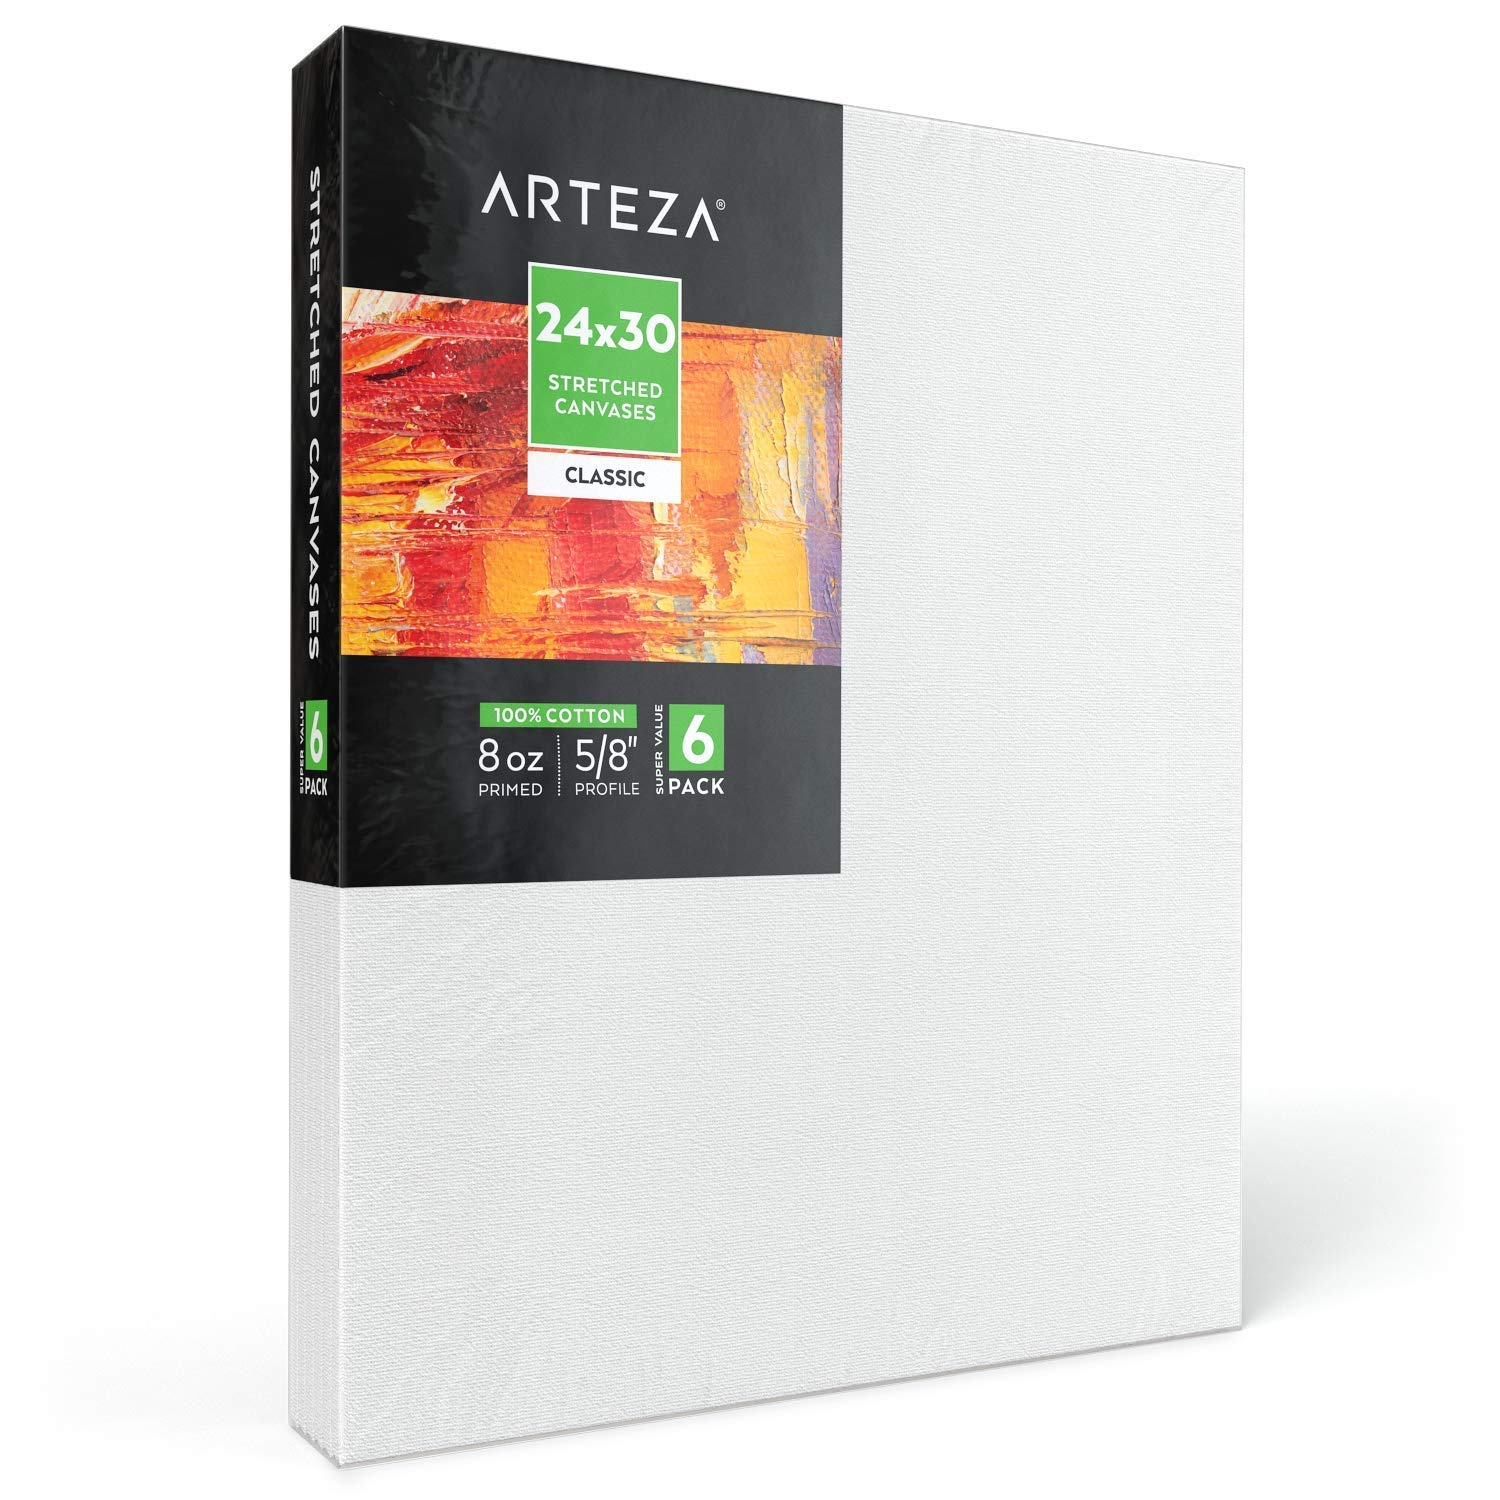 "Arteza Blank Pre Stretched Canvas for Painting, 18x24, Pack of 4, Primed, 100% Cotton, for Acrylic Paint, Oil Paint, Other Wet or Dry Art Media, for The Professional Artist, Hobby Painters, Kids 18x24"" ARTZ-8057"